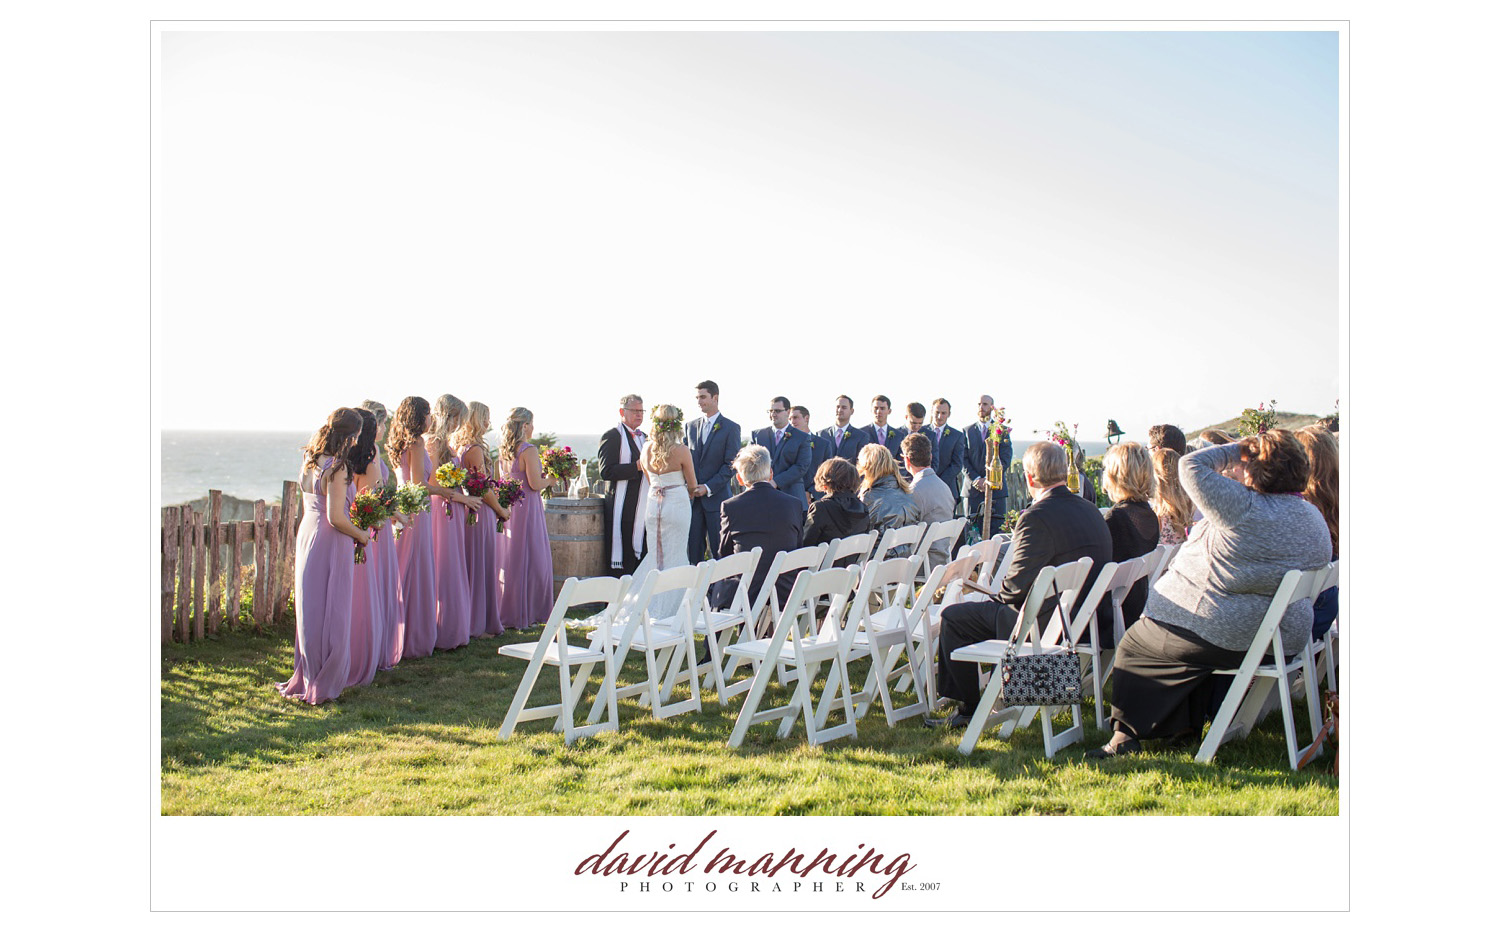 Sea-Ranch-Sonoma-Destination-Wedding-David-Manning-Photographers-141101-0029.jpg